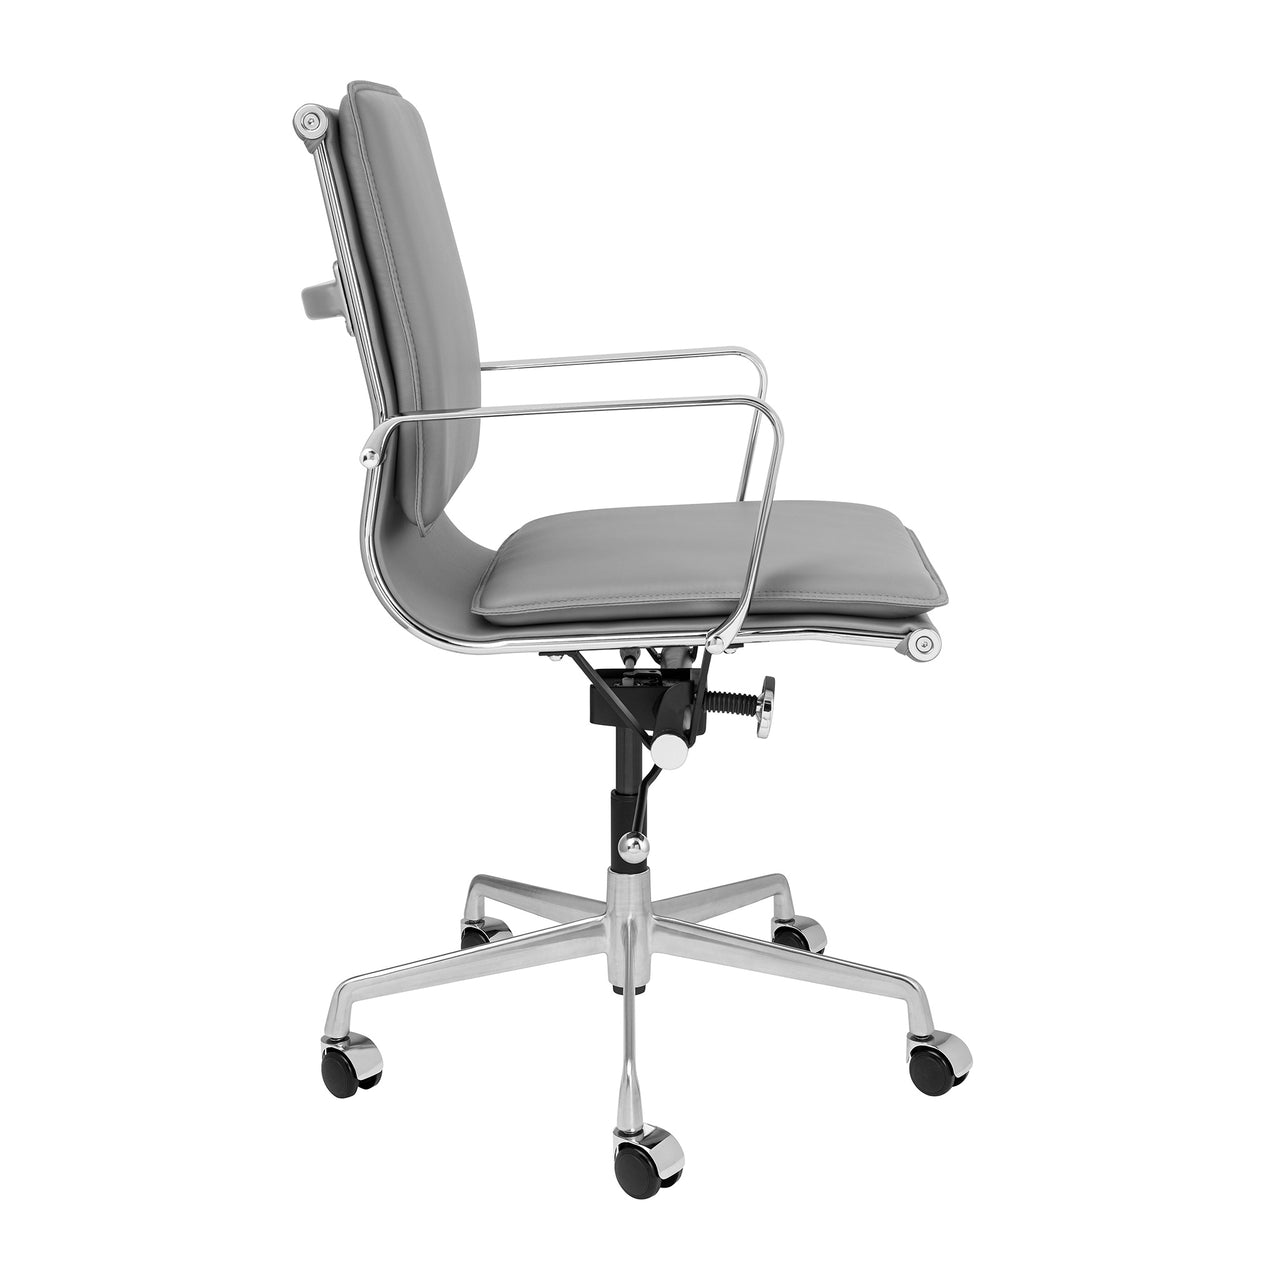 Lexi Soft Pad Office Chair (Grey)